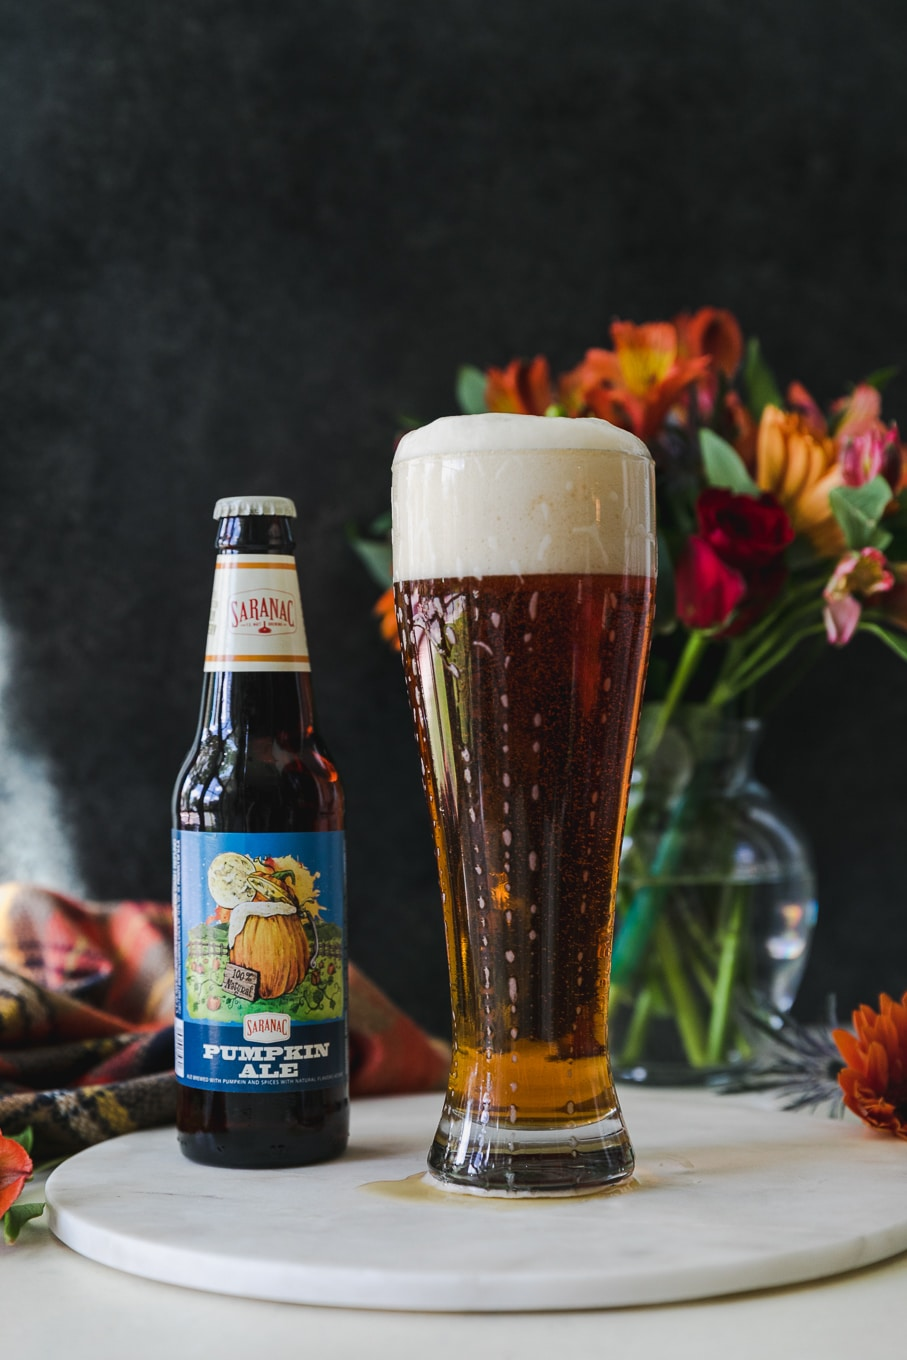 Forward facing shot of a beer glass filled with beer and a beer bottle next to it with a vase of flowers in the background and orange flowers scattered around